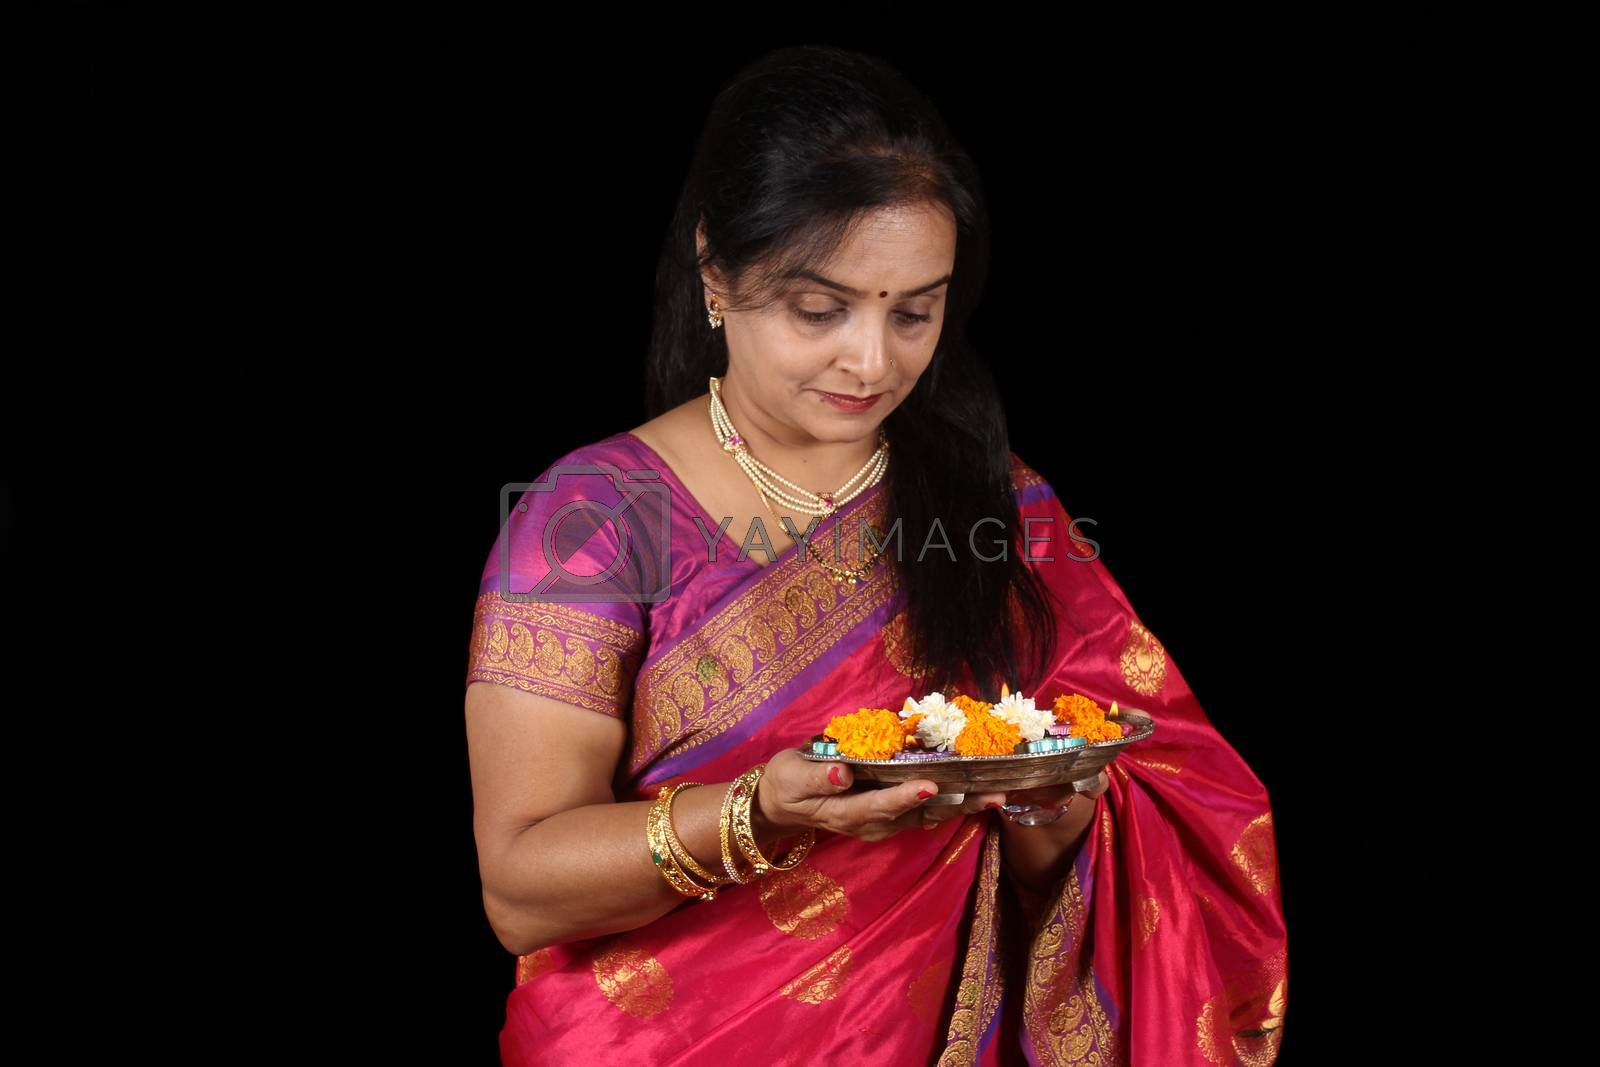 An Indian woman with a plate of flowers and lamp for a traditional prayer, on black studio background.